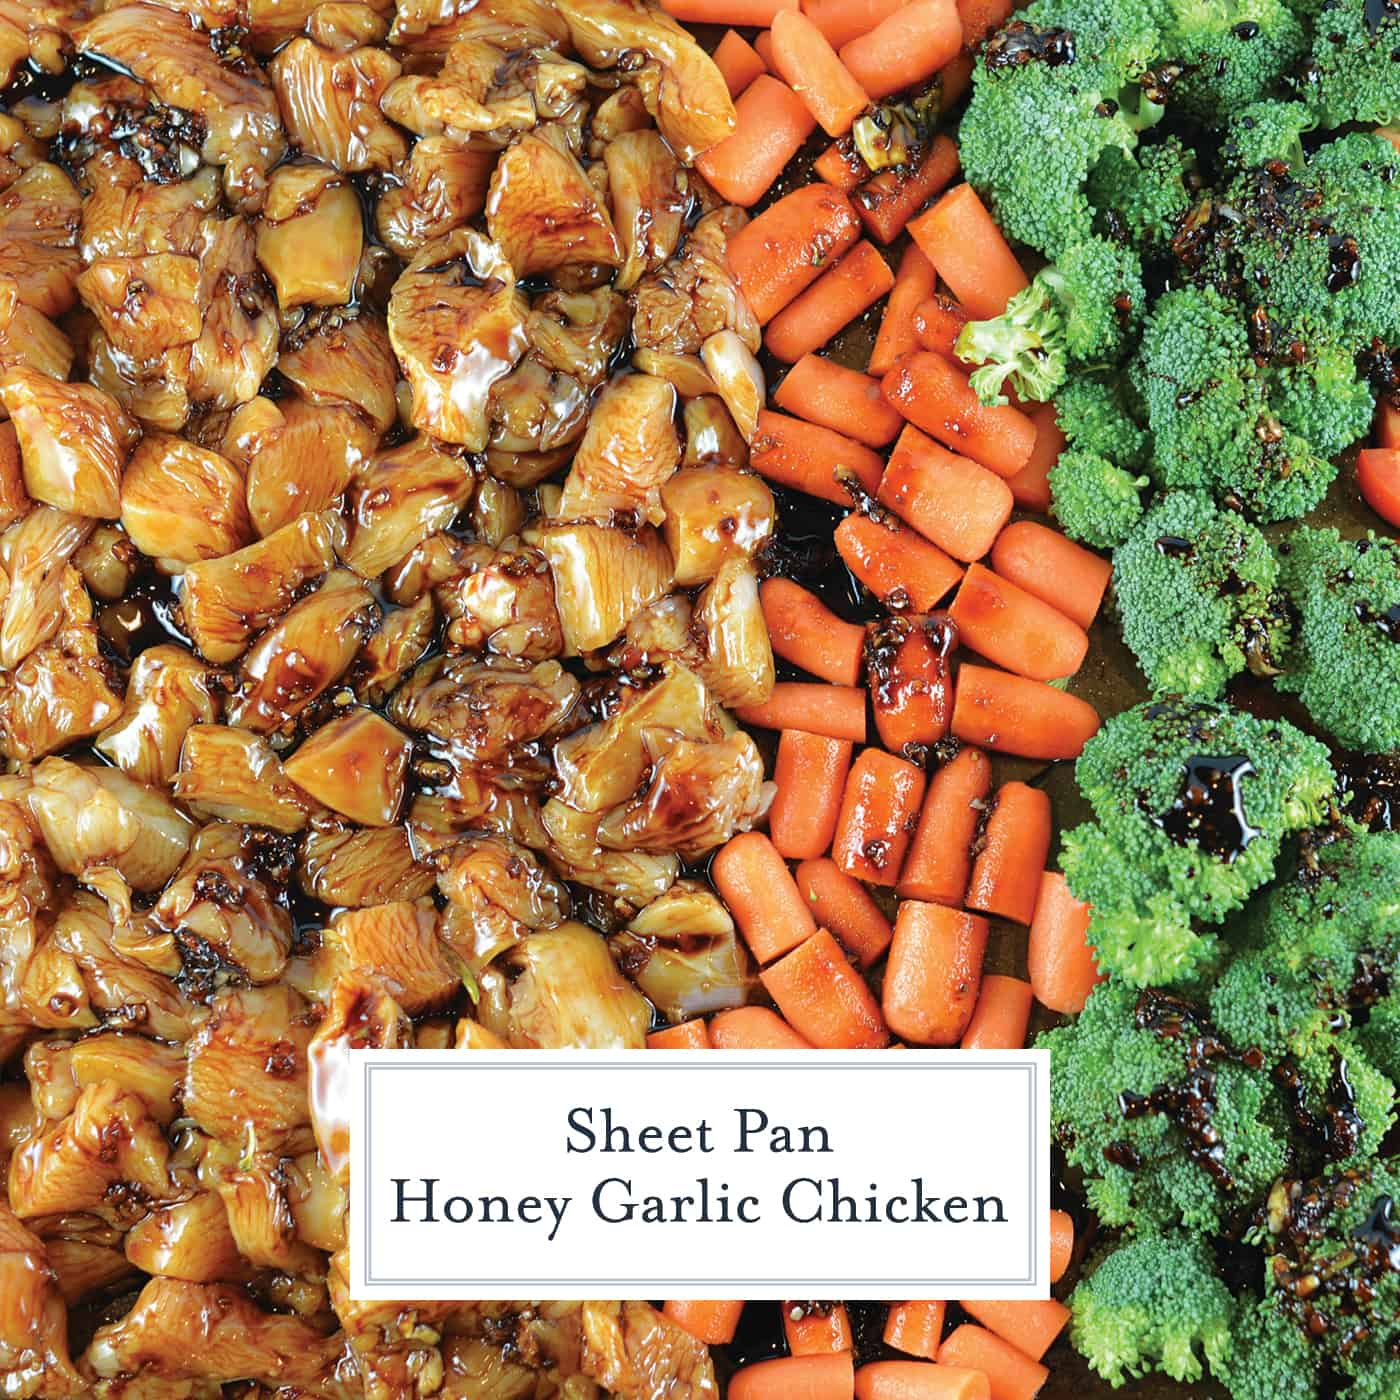 Sheet Pan Honey Garlic Chicken is an easy sheet pan dinner that's packed with flavor. An easy chicken recipe ready in just 30 minutes. #sheetpanmeals #honeygarlicchicken #easychickenrecipe www.savoryexperiments.com